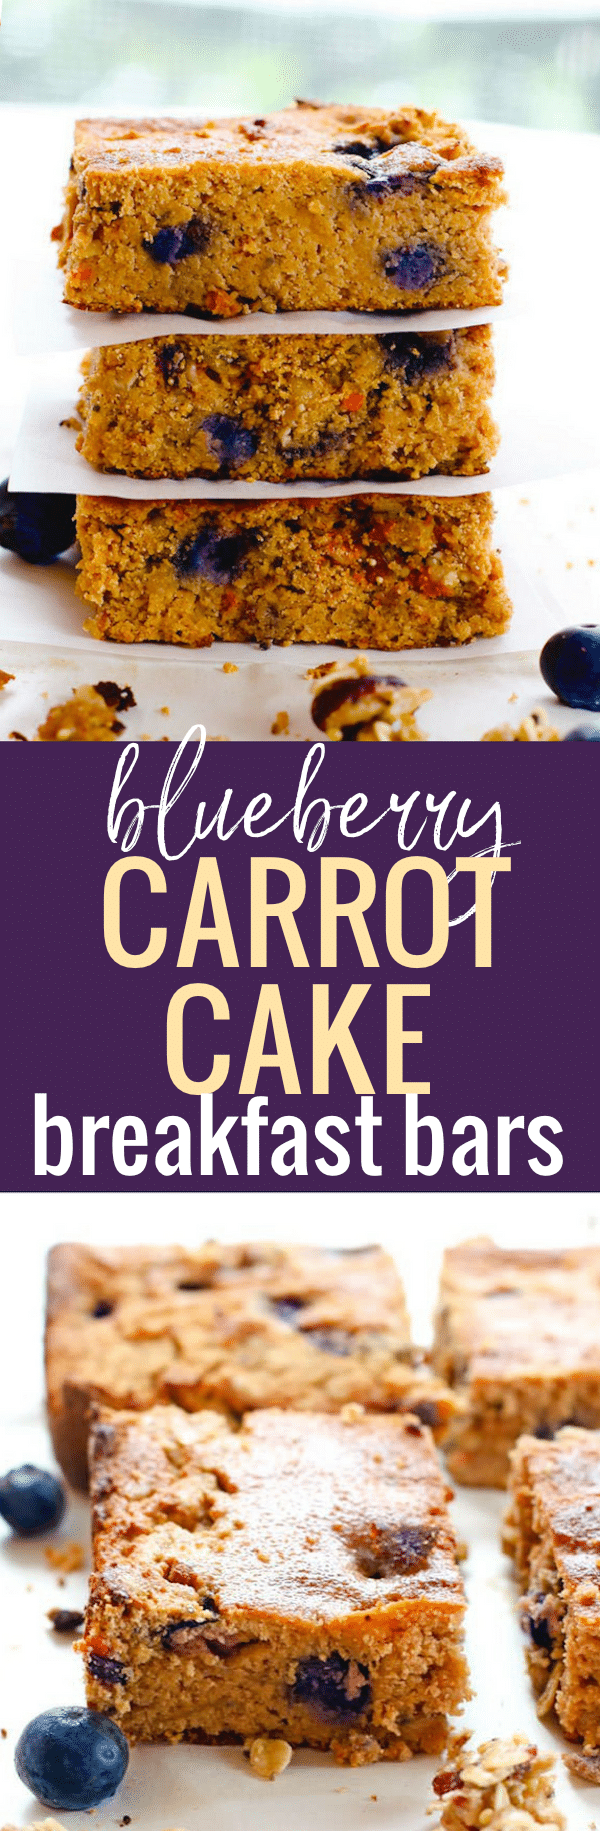 Blueberry Carrot Cake Bars. A healthy breakfast bar recipe made in less than 35 minutes! Fresh blueberry, granola, carrot, and spices! Made with gluten free ingredients, natural sugars, and a little extra protein boost.